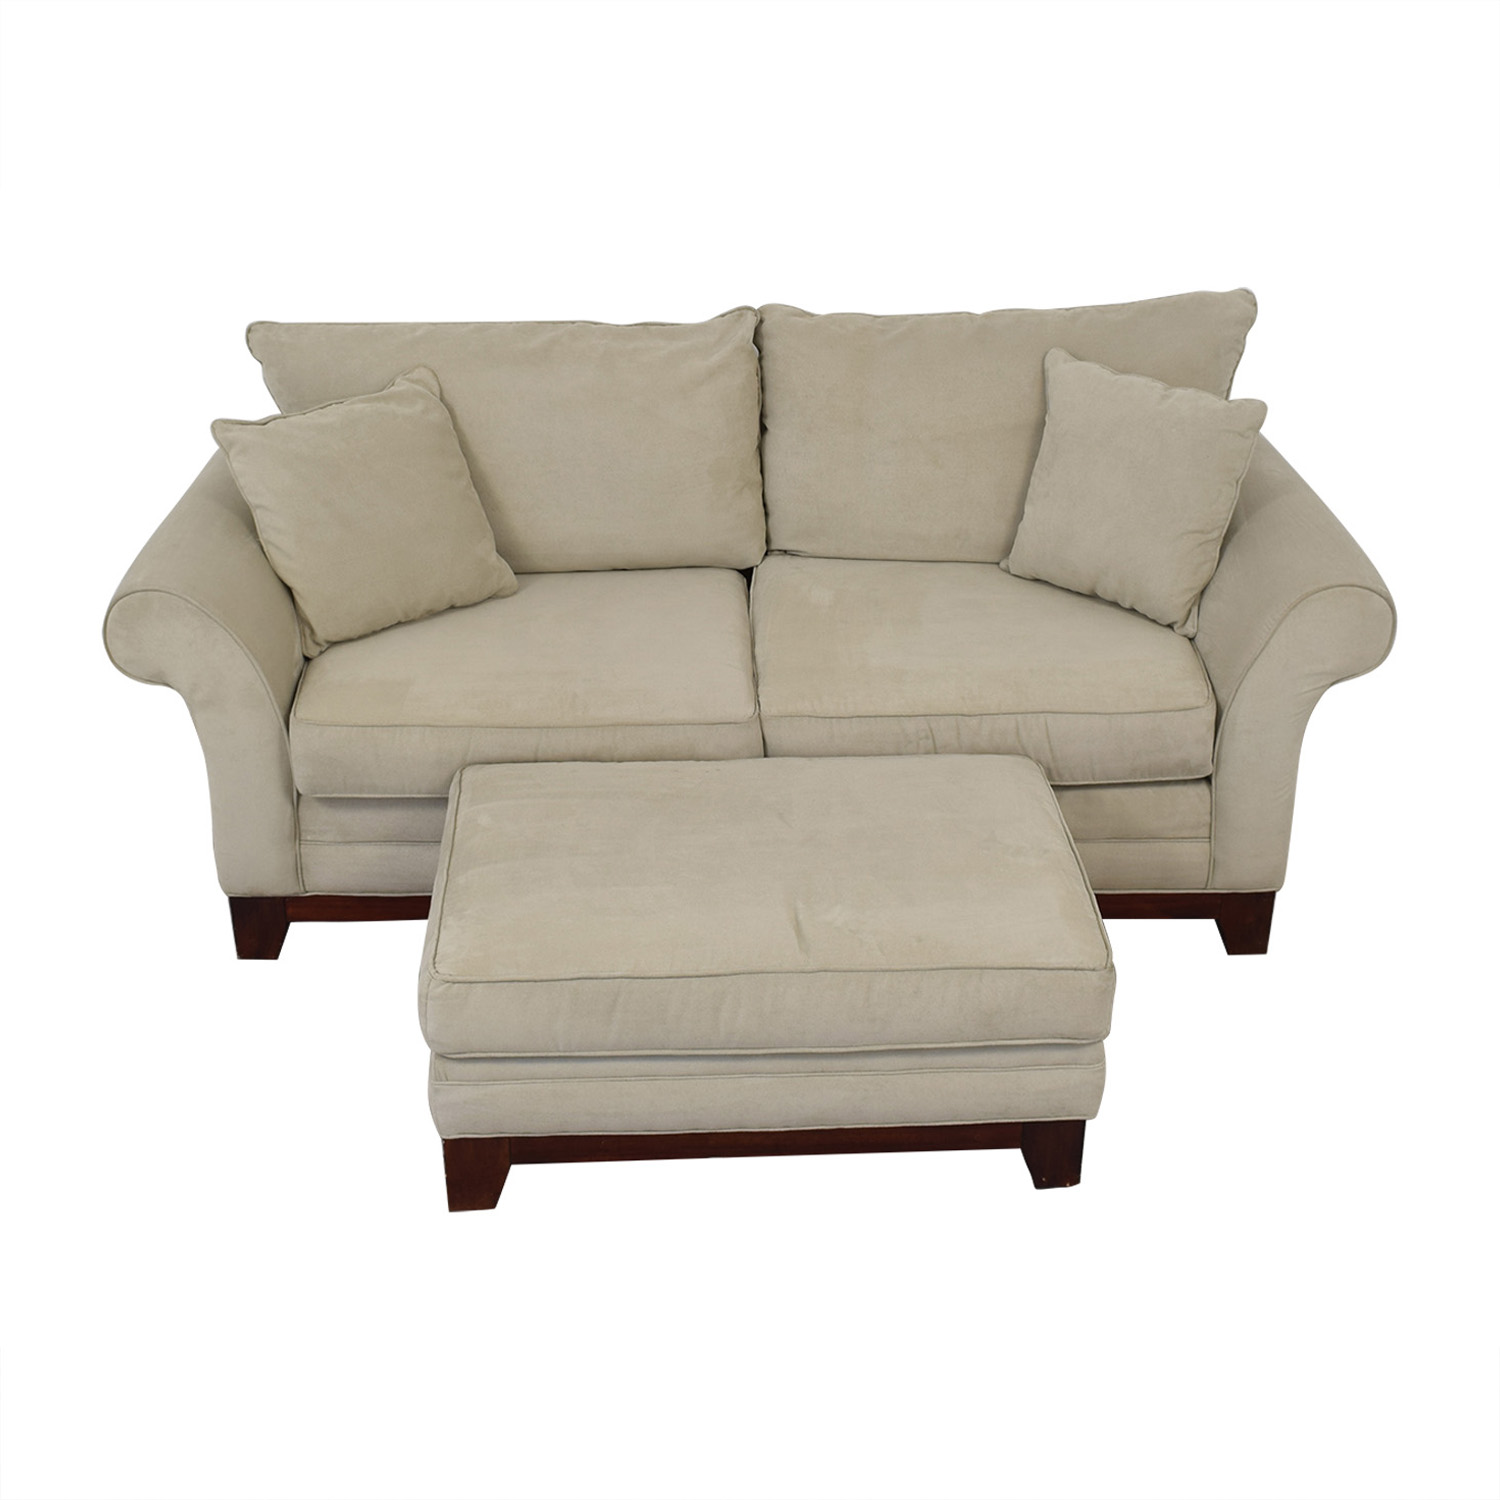 Craftmaster Furniture Craftmaster Furniture Microsuede Couch and Ottoman price